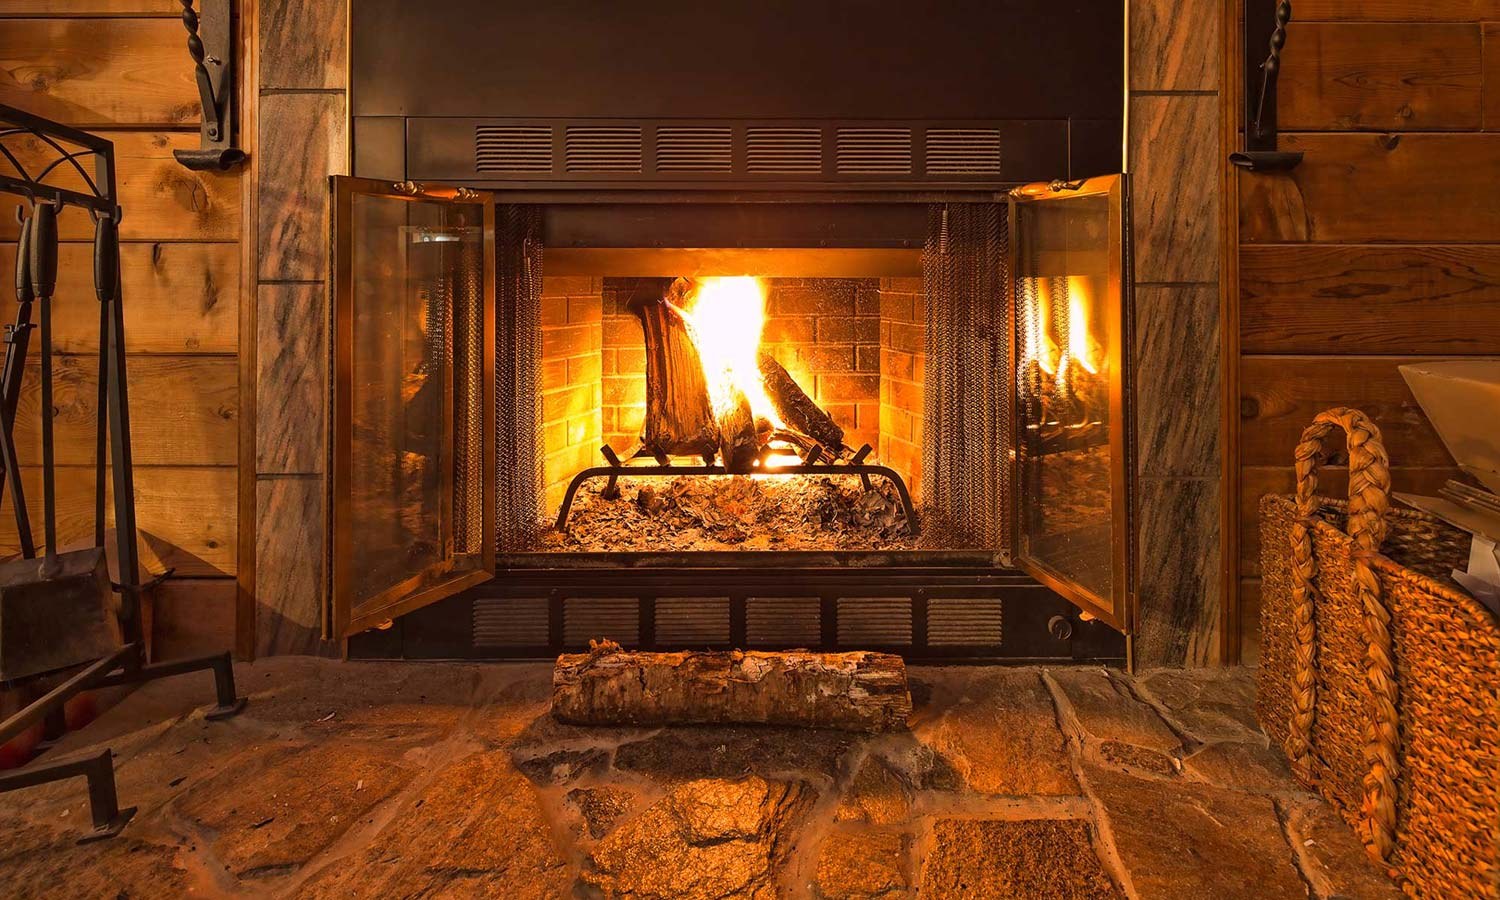 plumbing fireplace heating store a alexandria ellingson services electrical c